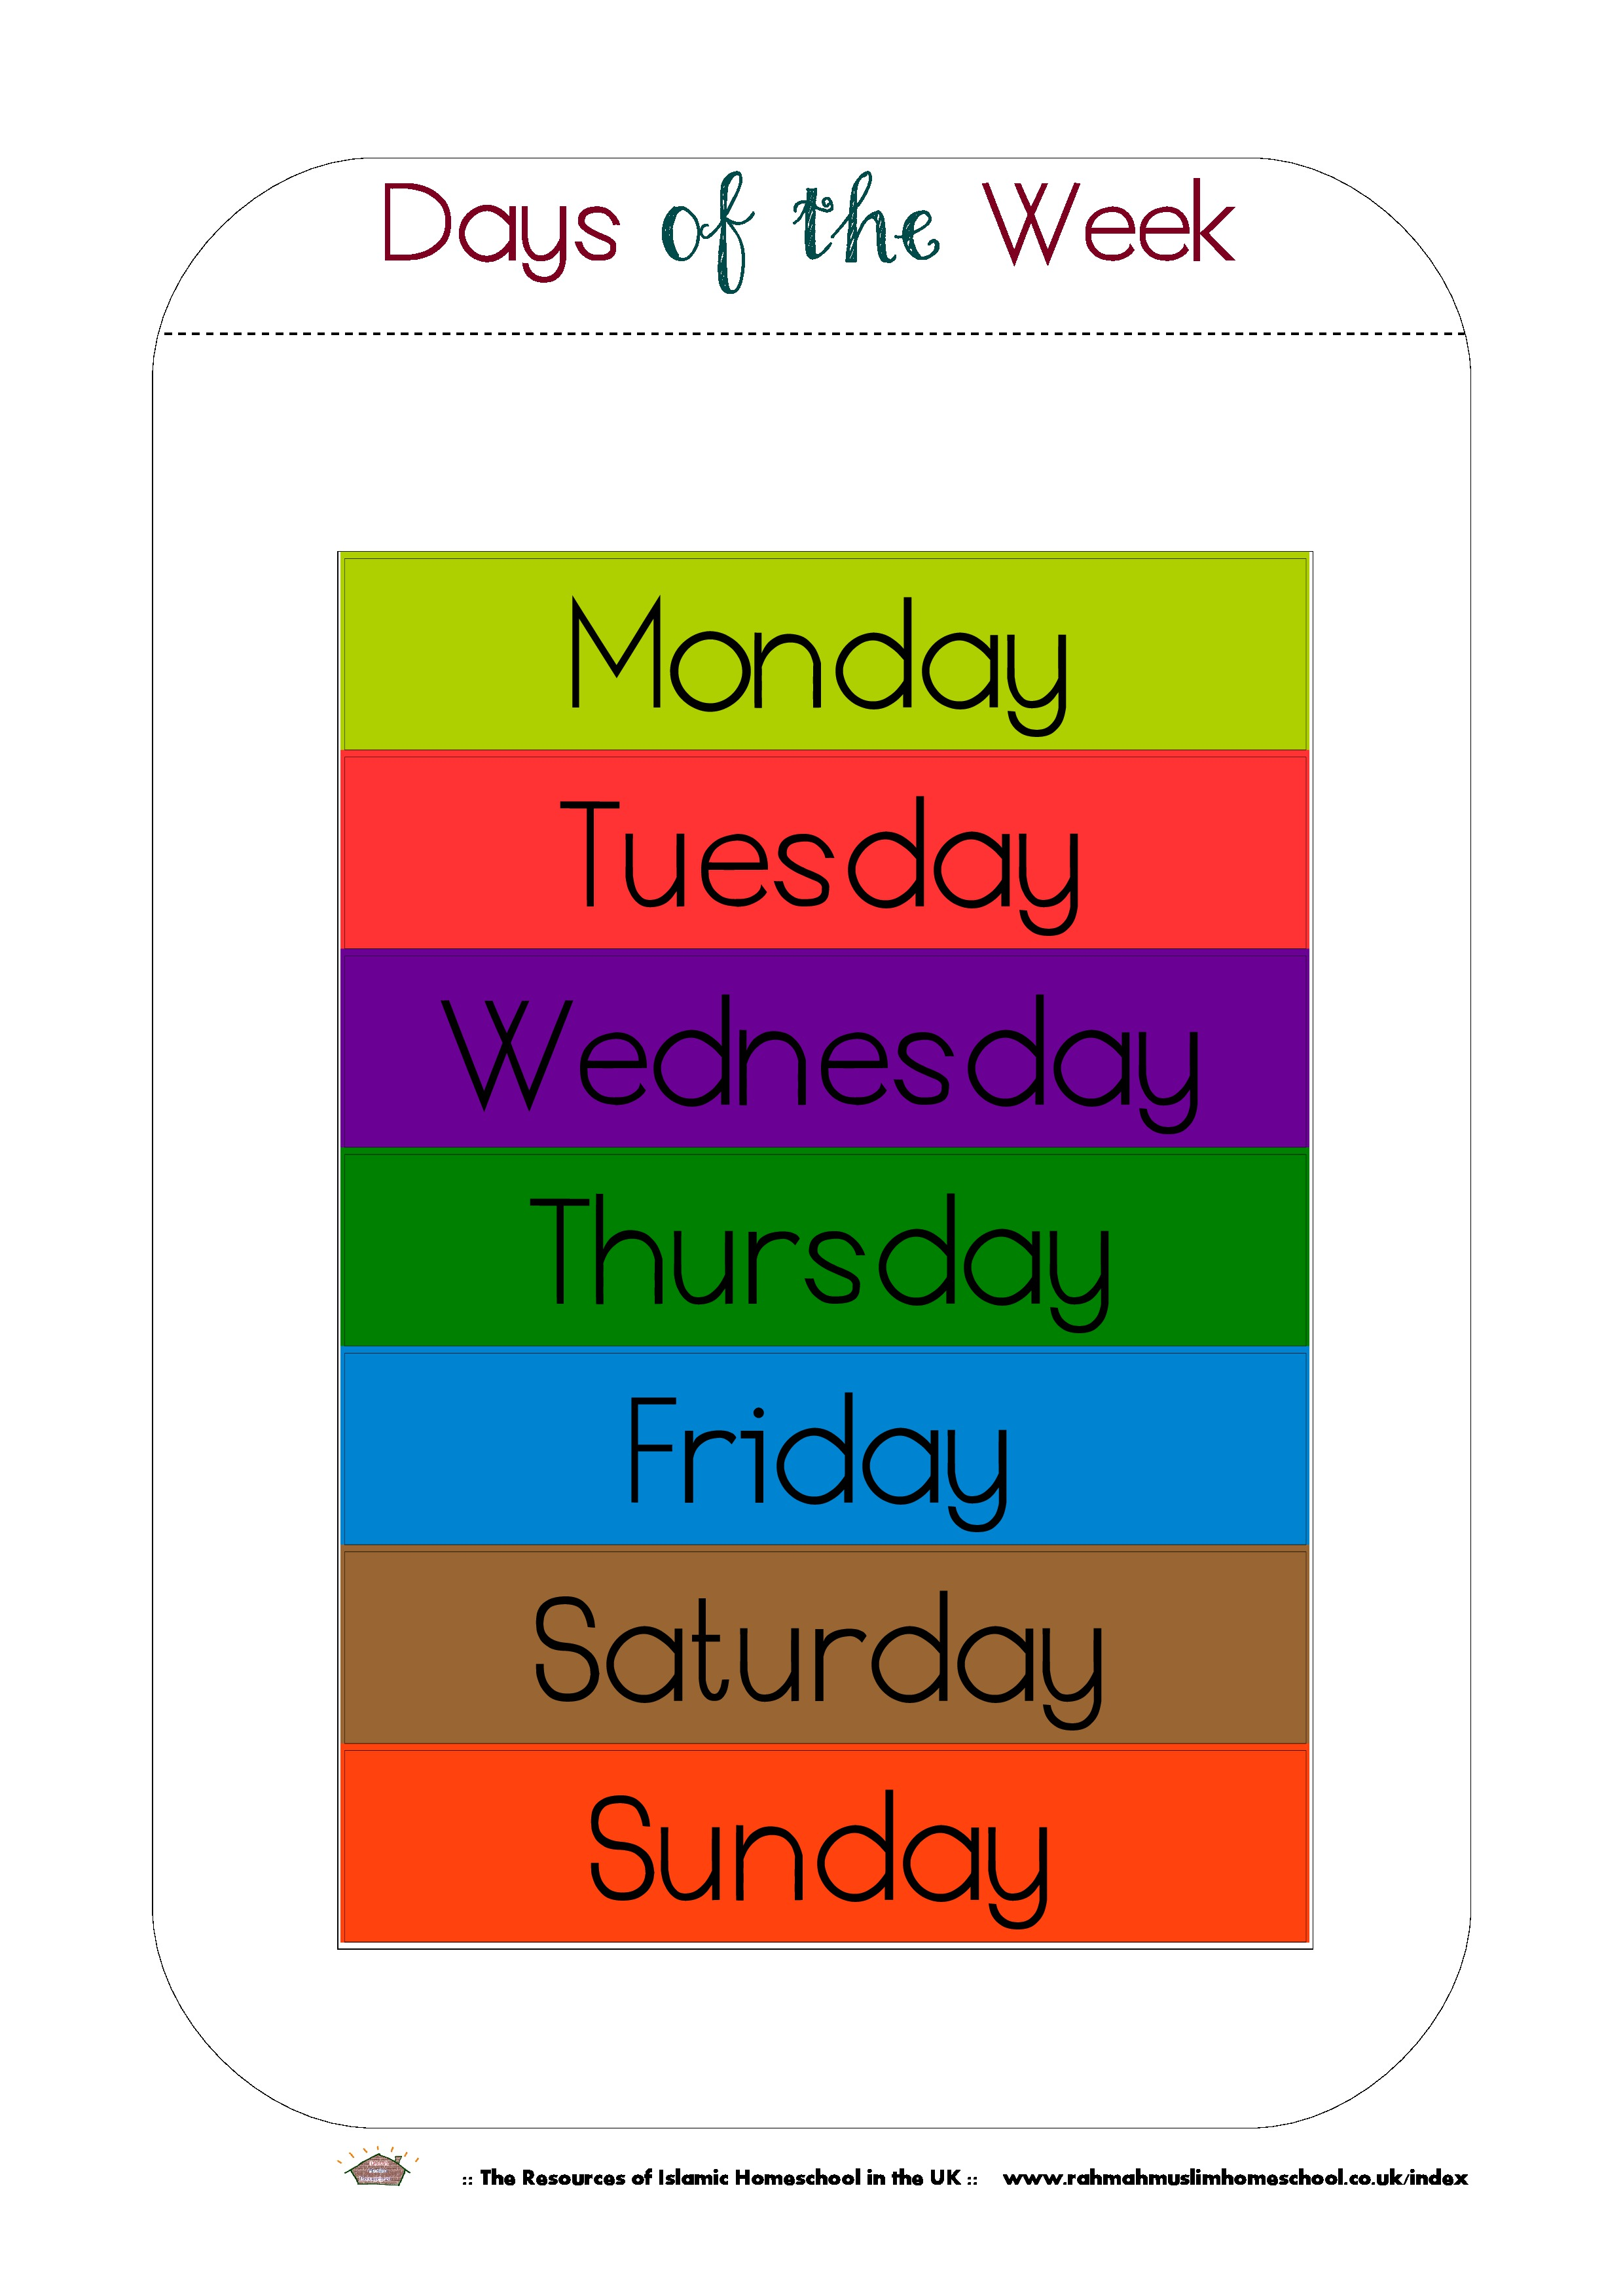 image about Free Printable Days of the Week Worksheets known as Totally free Printable Times of the 7 days Workbook and Poster The